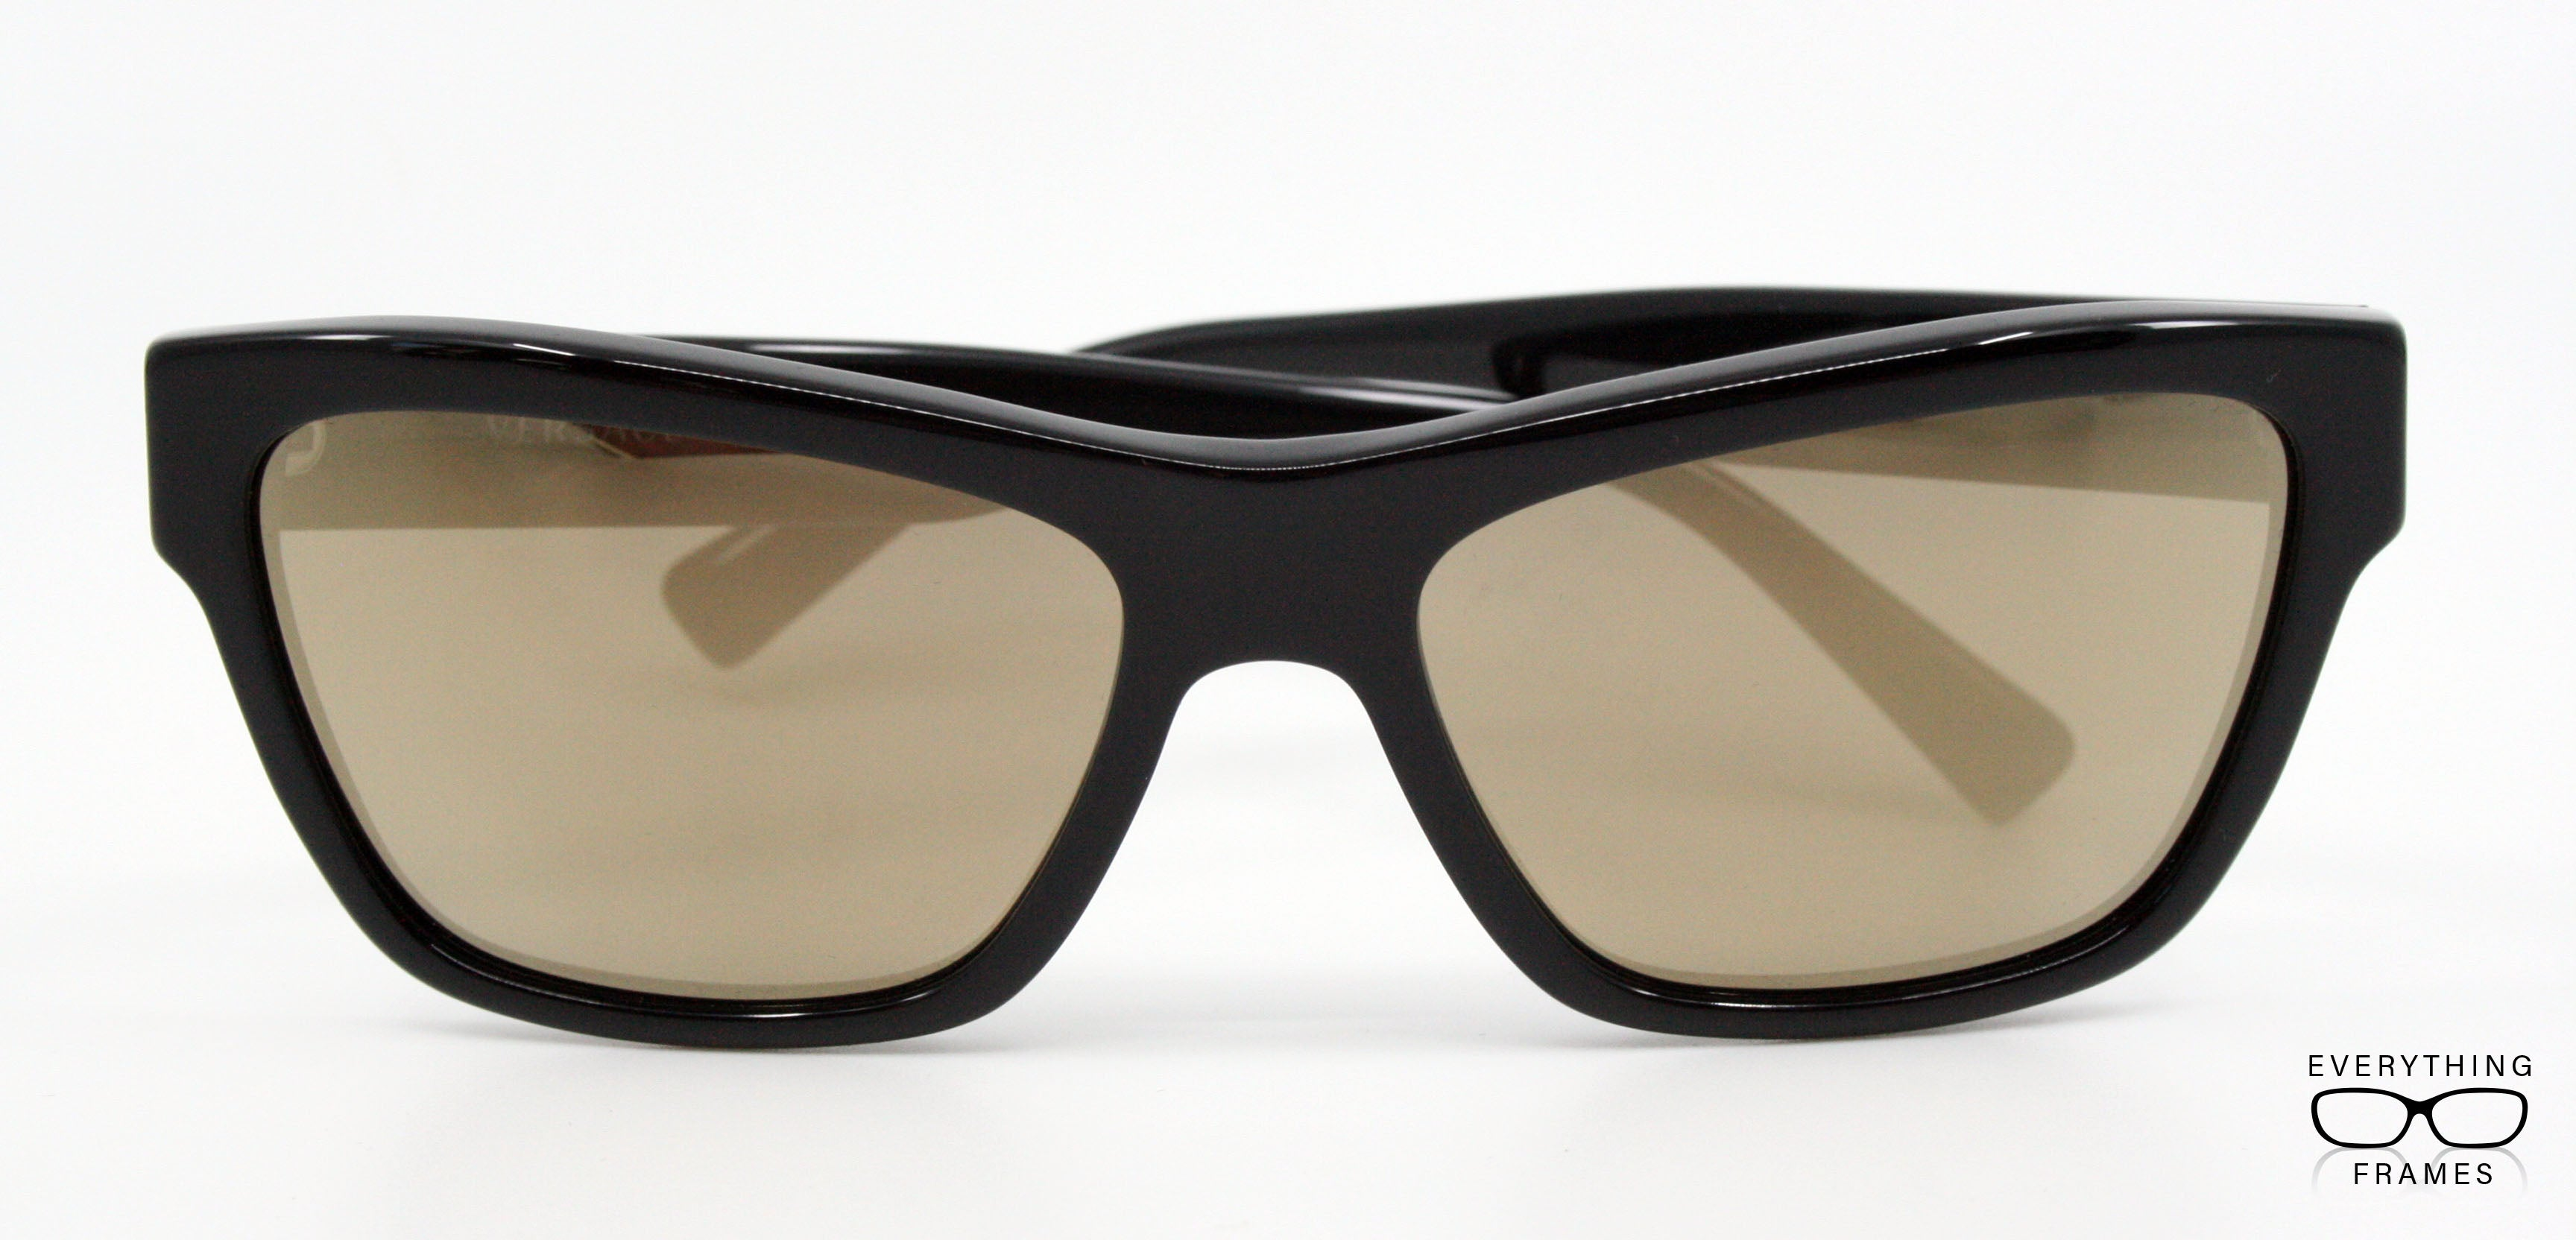 72554bb64c Versace Black with Light Brown Mirror Sunglasses for Women VE4344 GB1 1V  Front View